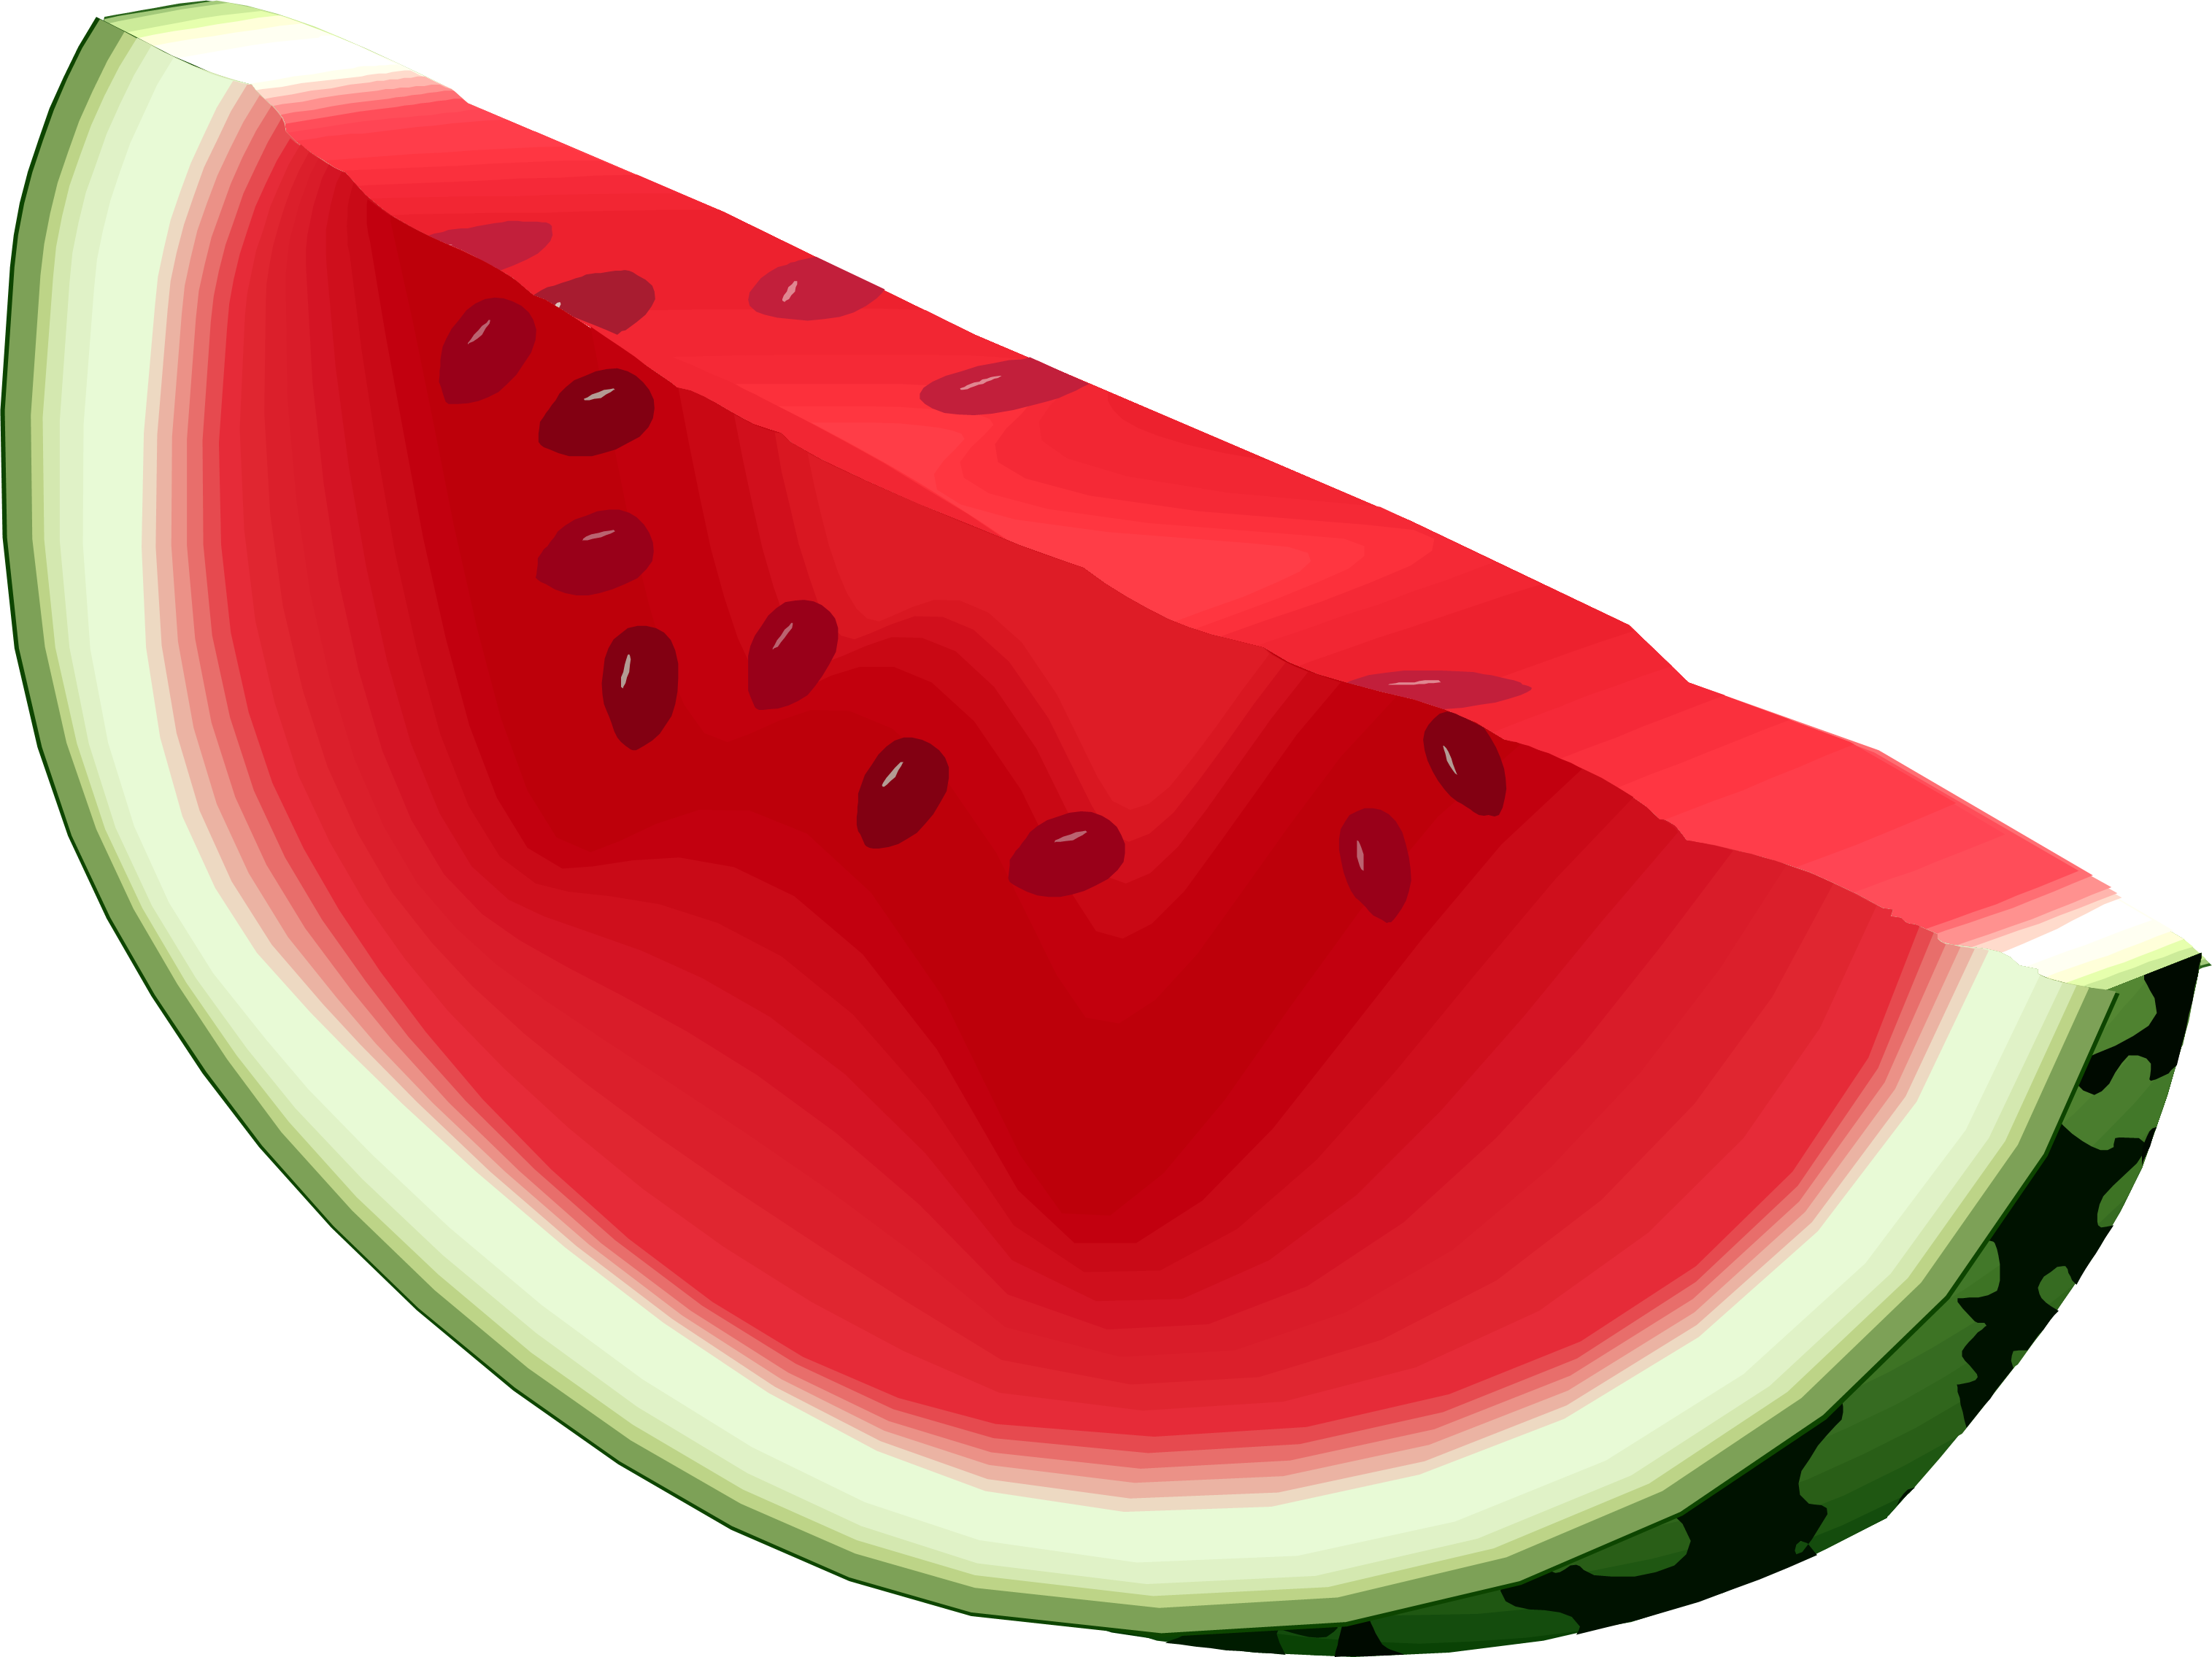 Backgrounds for watermelon slice clip art no background